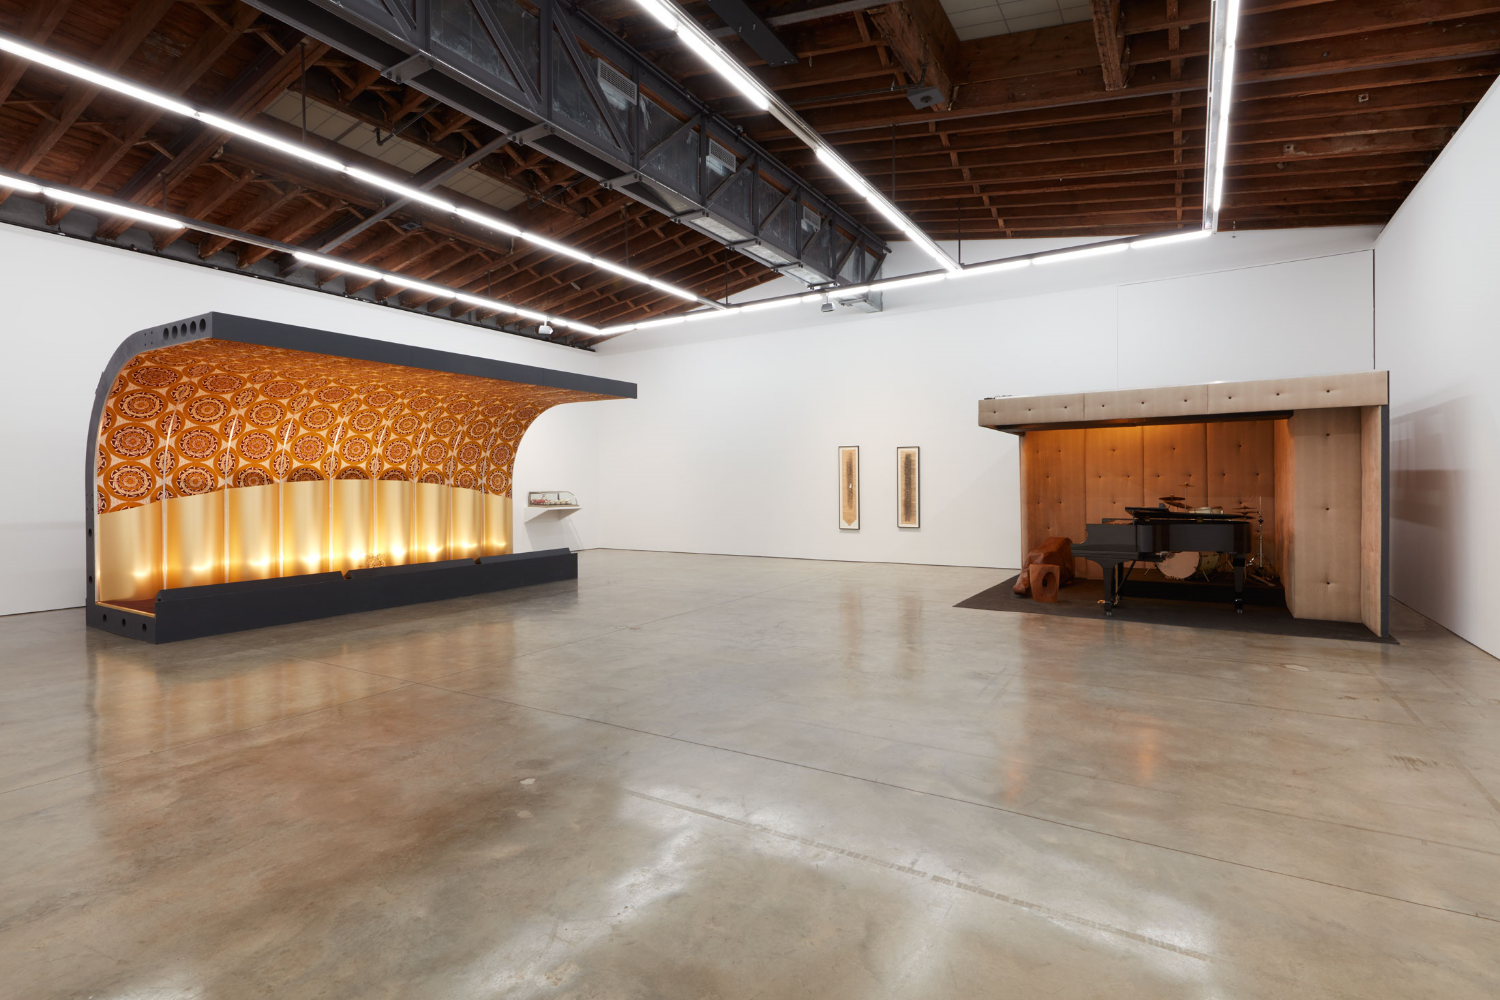 """Jason Moran,  STAGED ,  Savoy Ballroom 1  and  Three Deuces , 2015,Mixed media, sound,120 x 216 x 120 inches (304.8 x 548.6 x 304.8 cm).     0   0   1   11   60   company   1   1   70   14.0                   Normal   0           false   false   false     EN-US   JA   X-NONE                                                                                                                                                                                                                                                                                                                                                                       /* Style Definitions */ table.MsoNormalTable {mso-style-name:""""Table Normal""""; mso-tstyle-rowband-size:0; mso-tstyle-colband-size:0; mso-style-noshow:yes; mso-style-priority:99; mso-style-parent:""""""""; mso-padding-alt:0in 5.4pt 0in 5.4pt; mso-para-margin:0in; mso-para-margin-bottom:.0001pt; mso-pagination:widow-orphan; font-size:12.0pt; font-family:Cambria; mso-ascii-font-family:Cambria; mso-ascii-theme-font:minor-latin; mso-hansi-font-family:Cambria; mso-hansi-theme-font:minor-latin;}   © Jason Moran; Courtesy of the artist and Luhring Augustine, New York."""